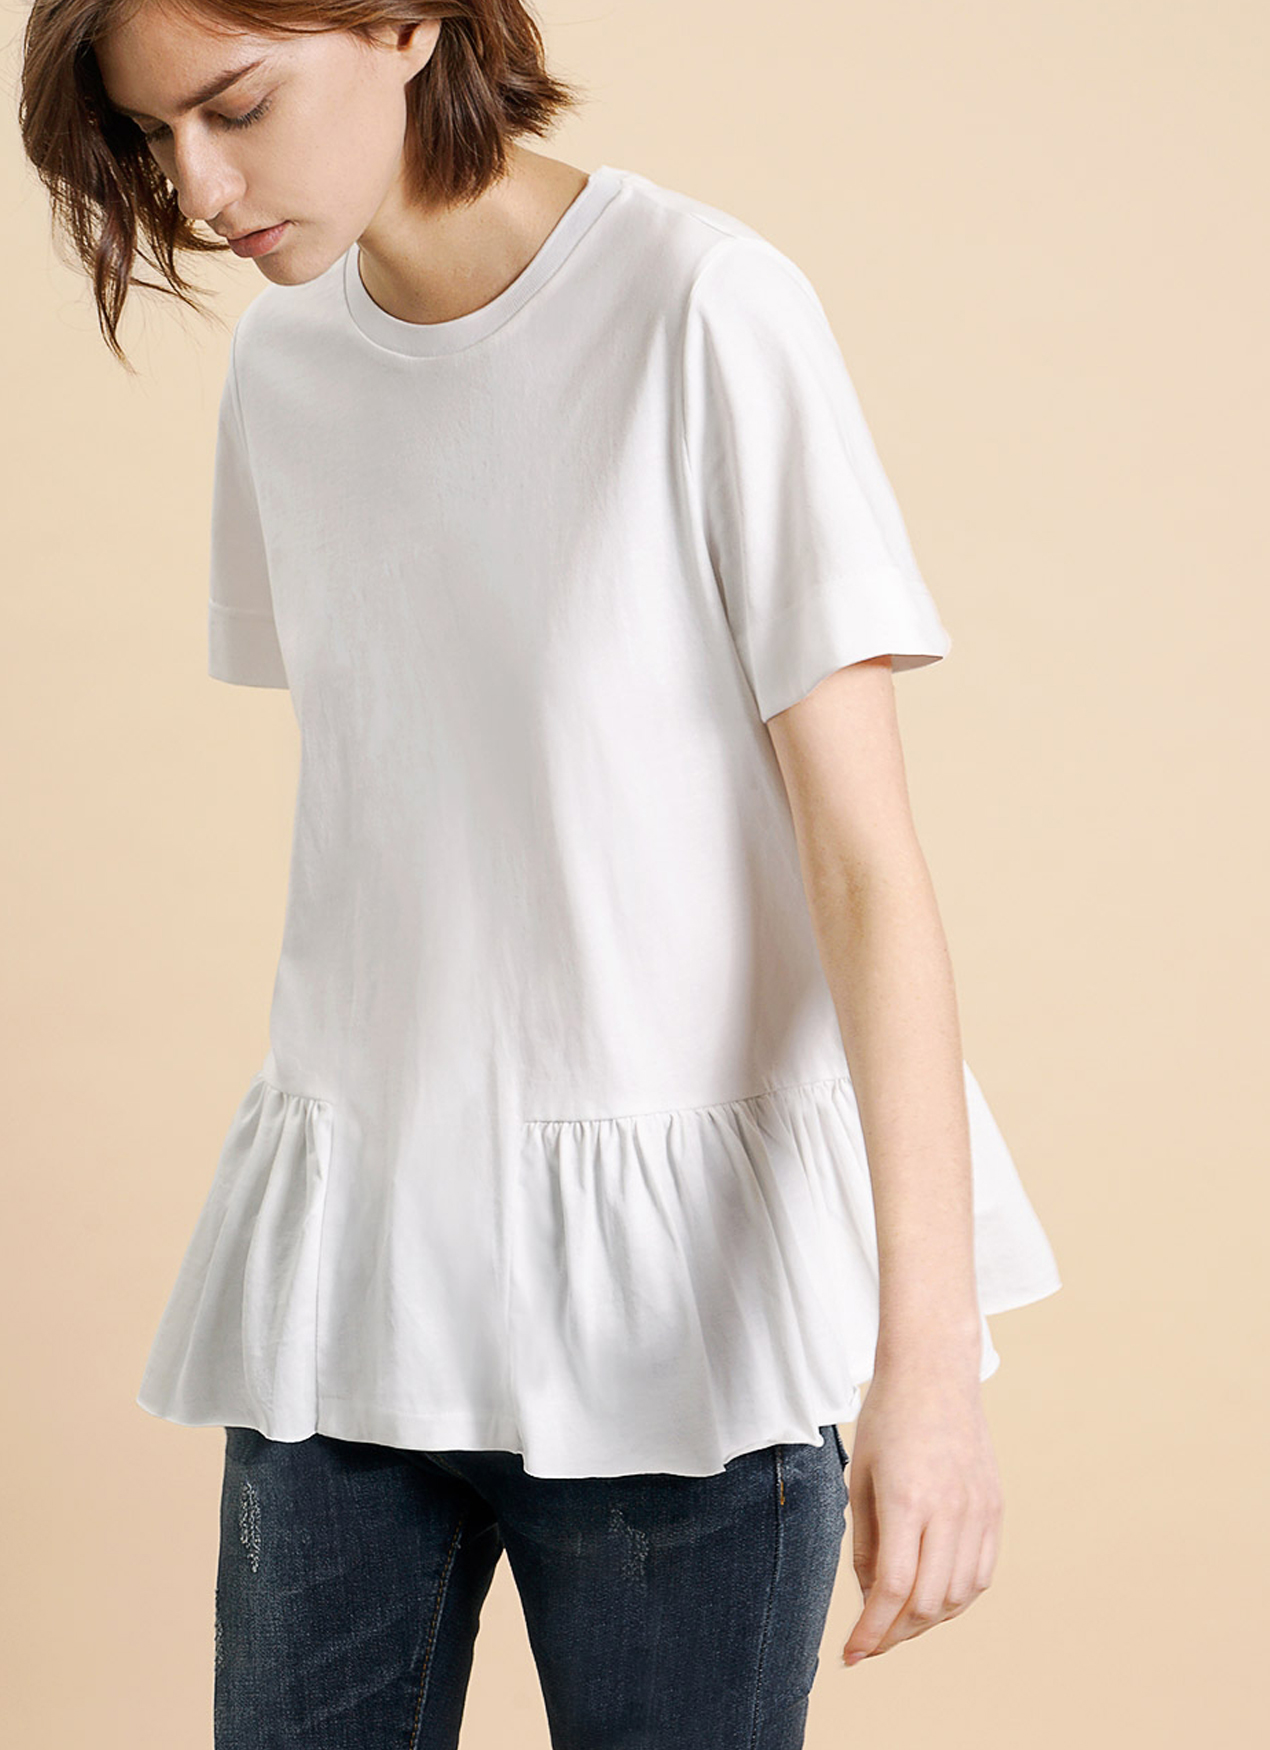 Saturday Club White Cotton Jersey T-shirt With Gathered Hem